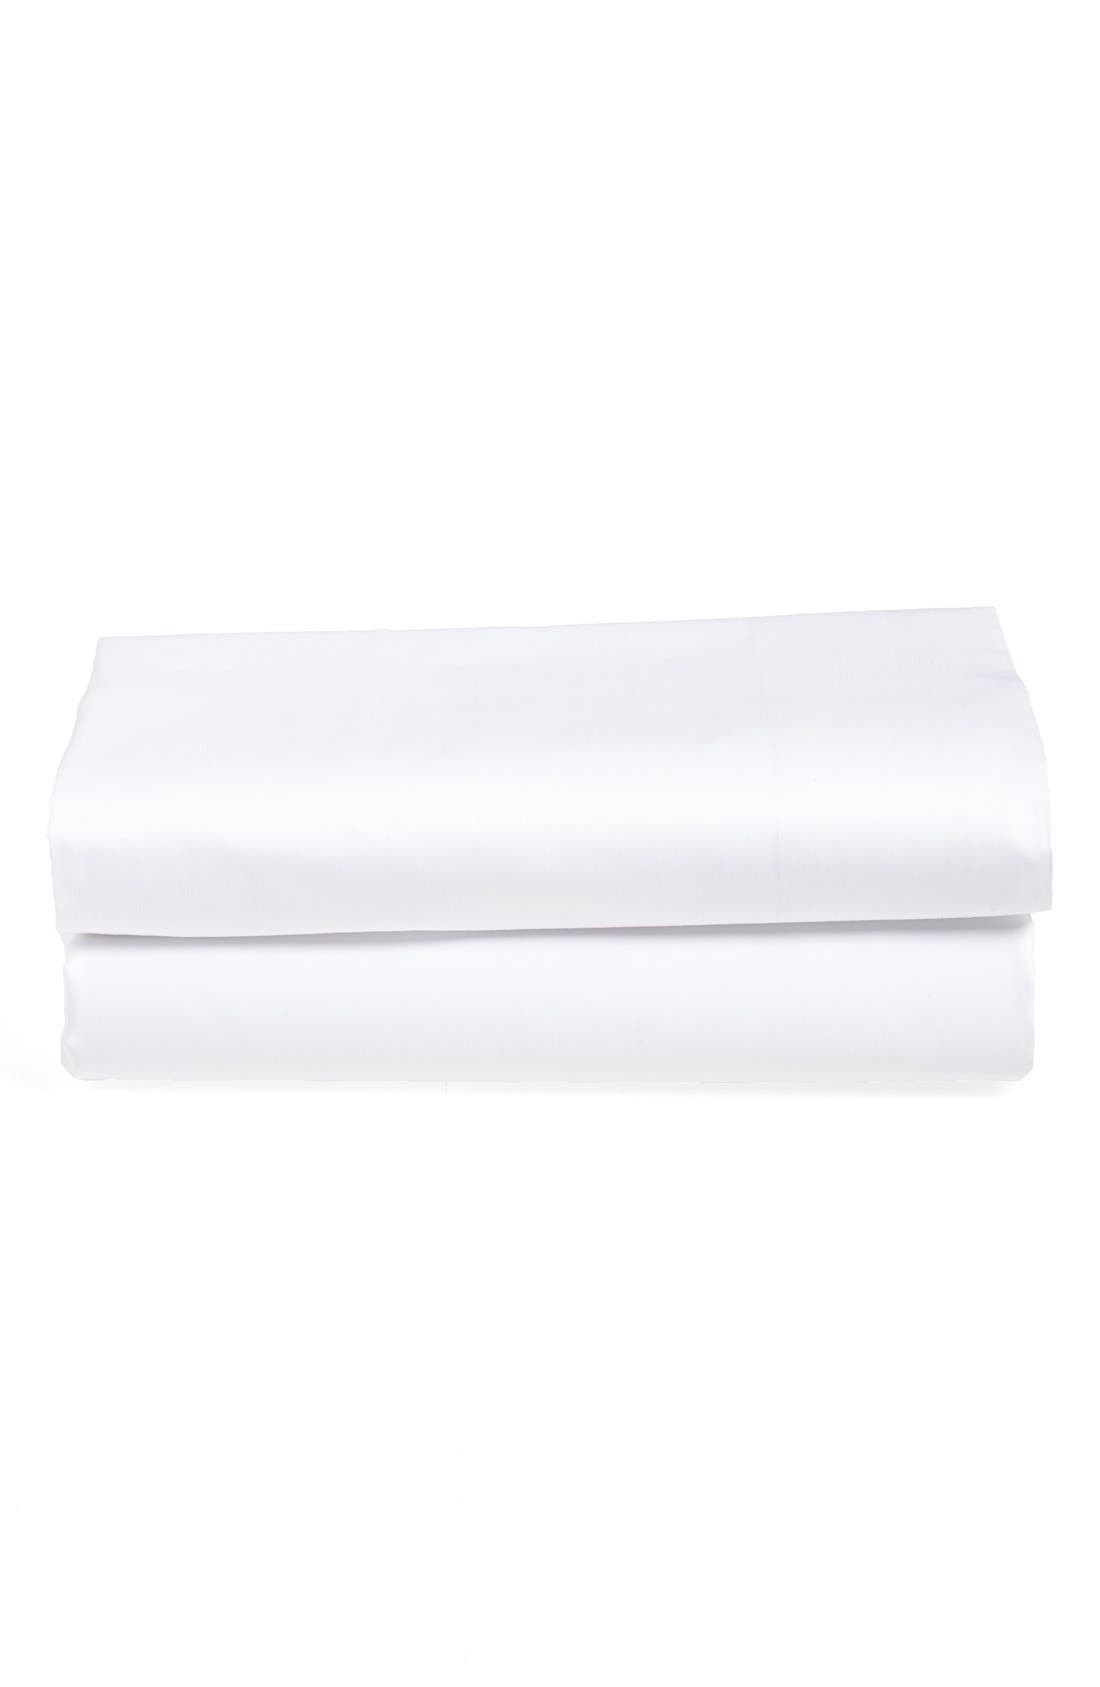 Main Image - Westin At Home 'Ultra Luxe' 600 Thread Count Fitted Sheet